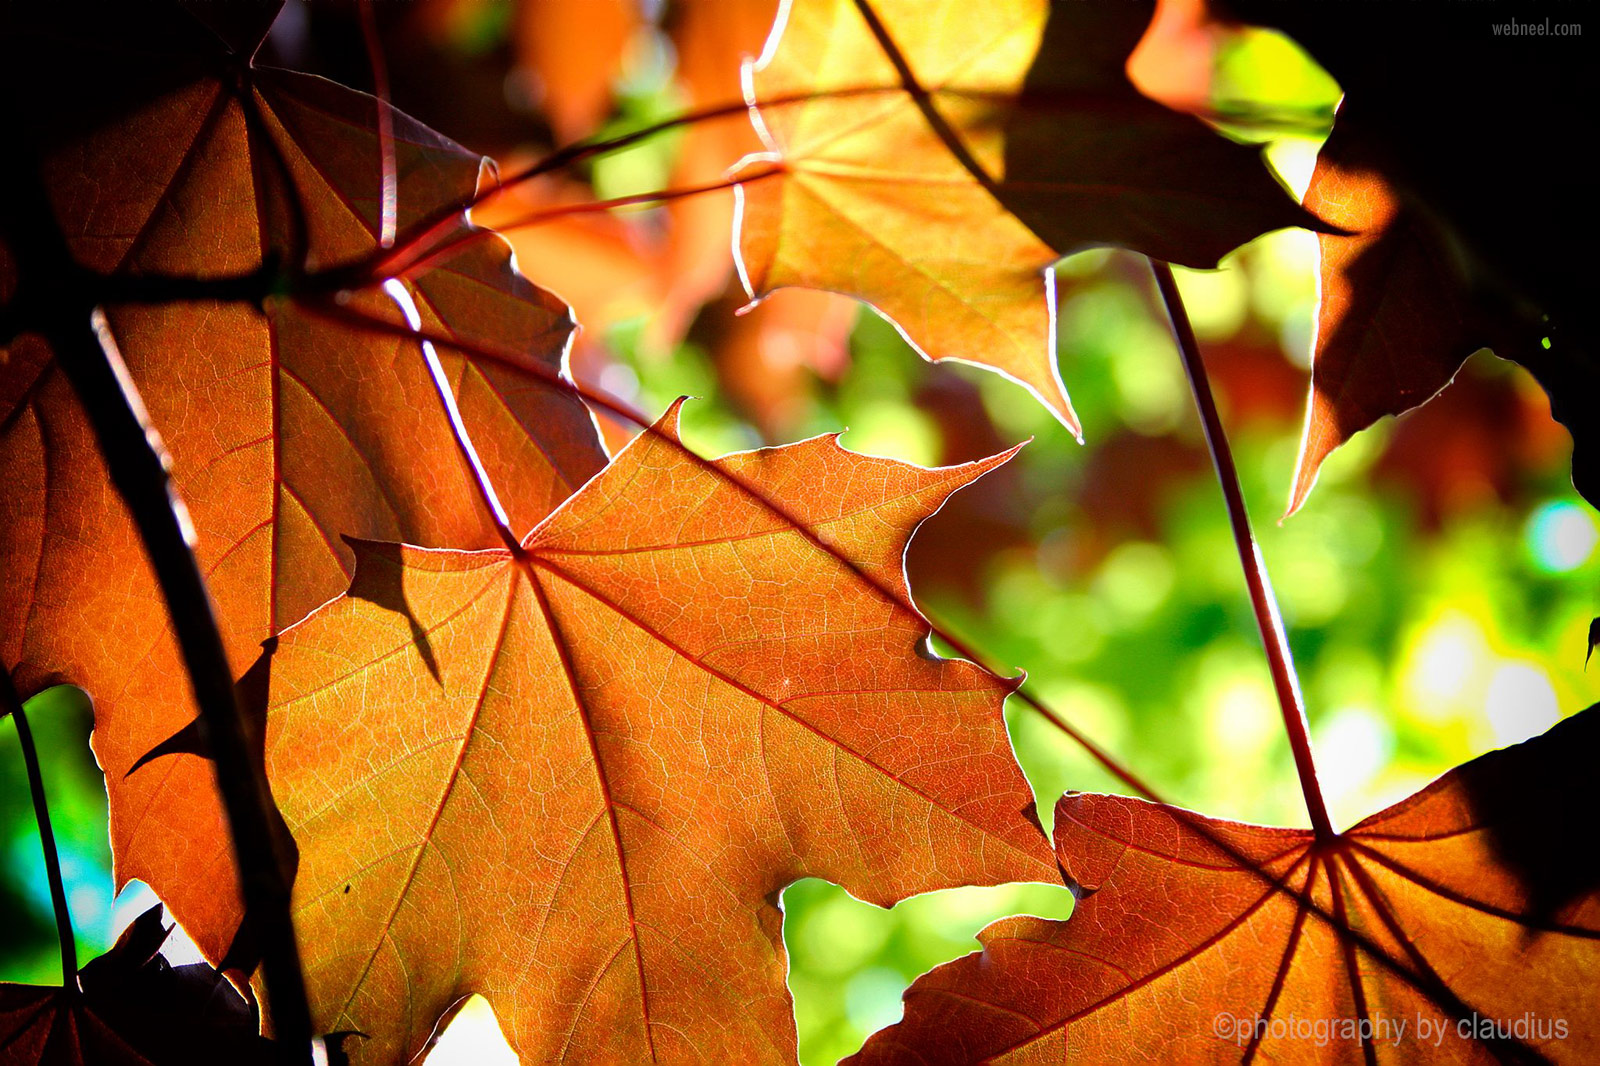 beauitiful leafs photography by claudius